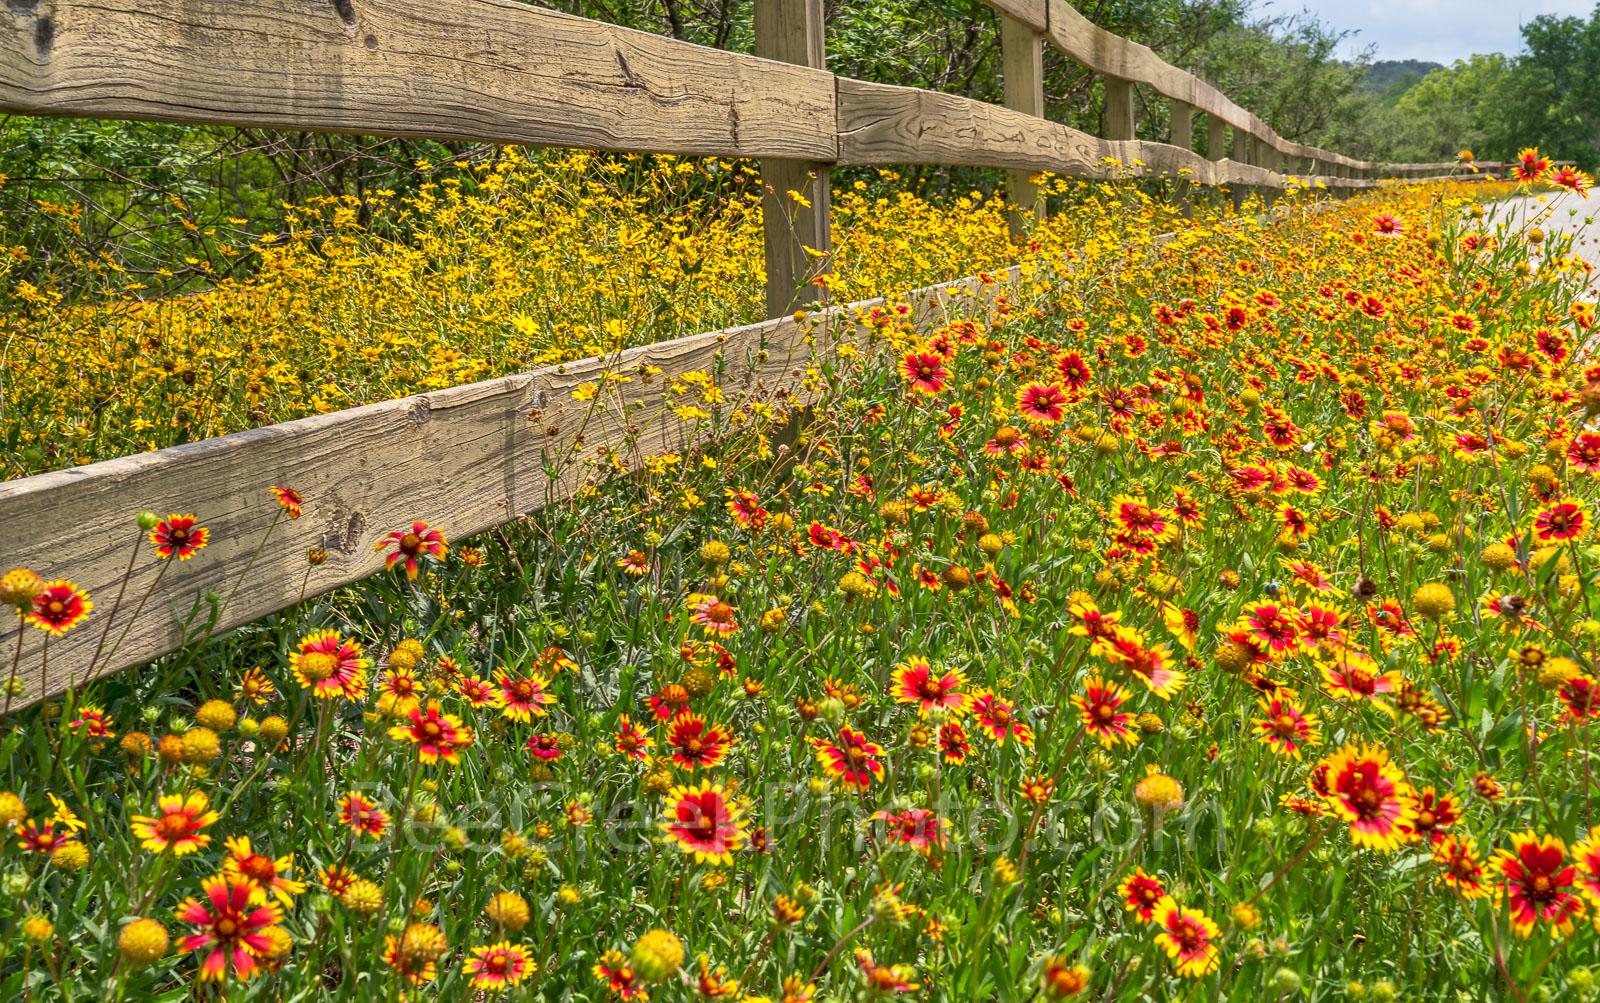 Texas, wildflowers, fence, indian blanket, firewheels, yellow, red, Damianta, Texas Hill country, back roads, summer, colorful, wooden fence, spring, yellow wildflowers, landscape, texas wildflower, , photo